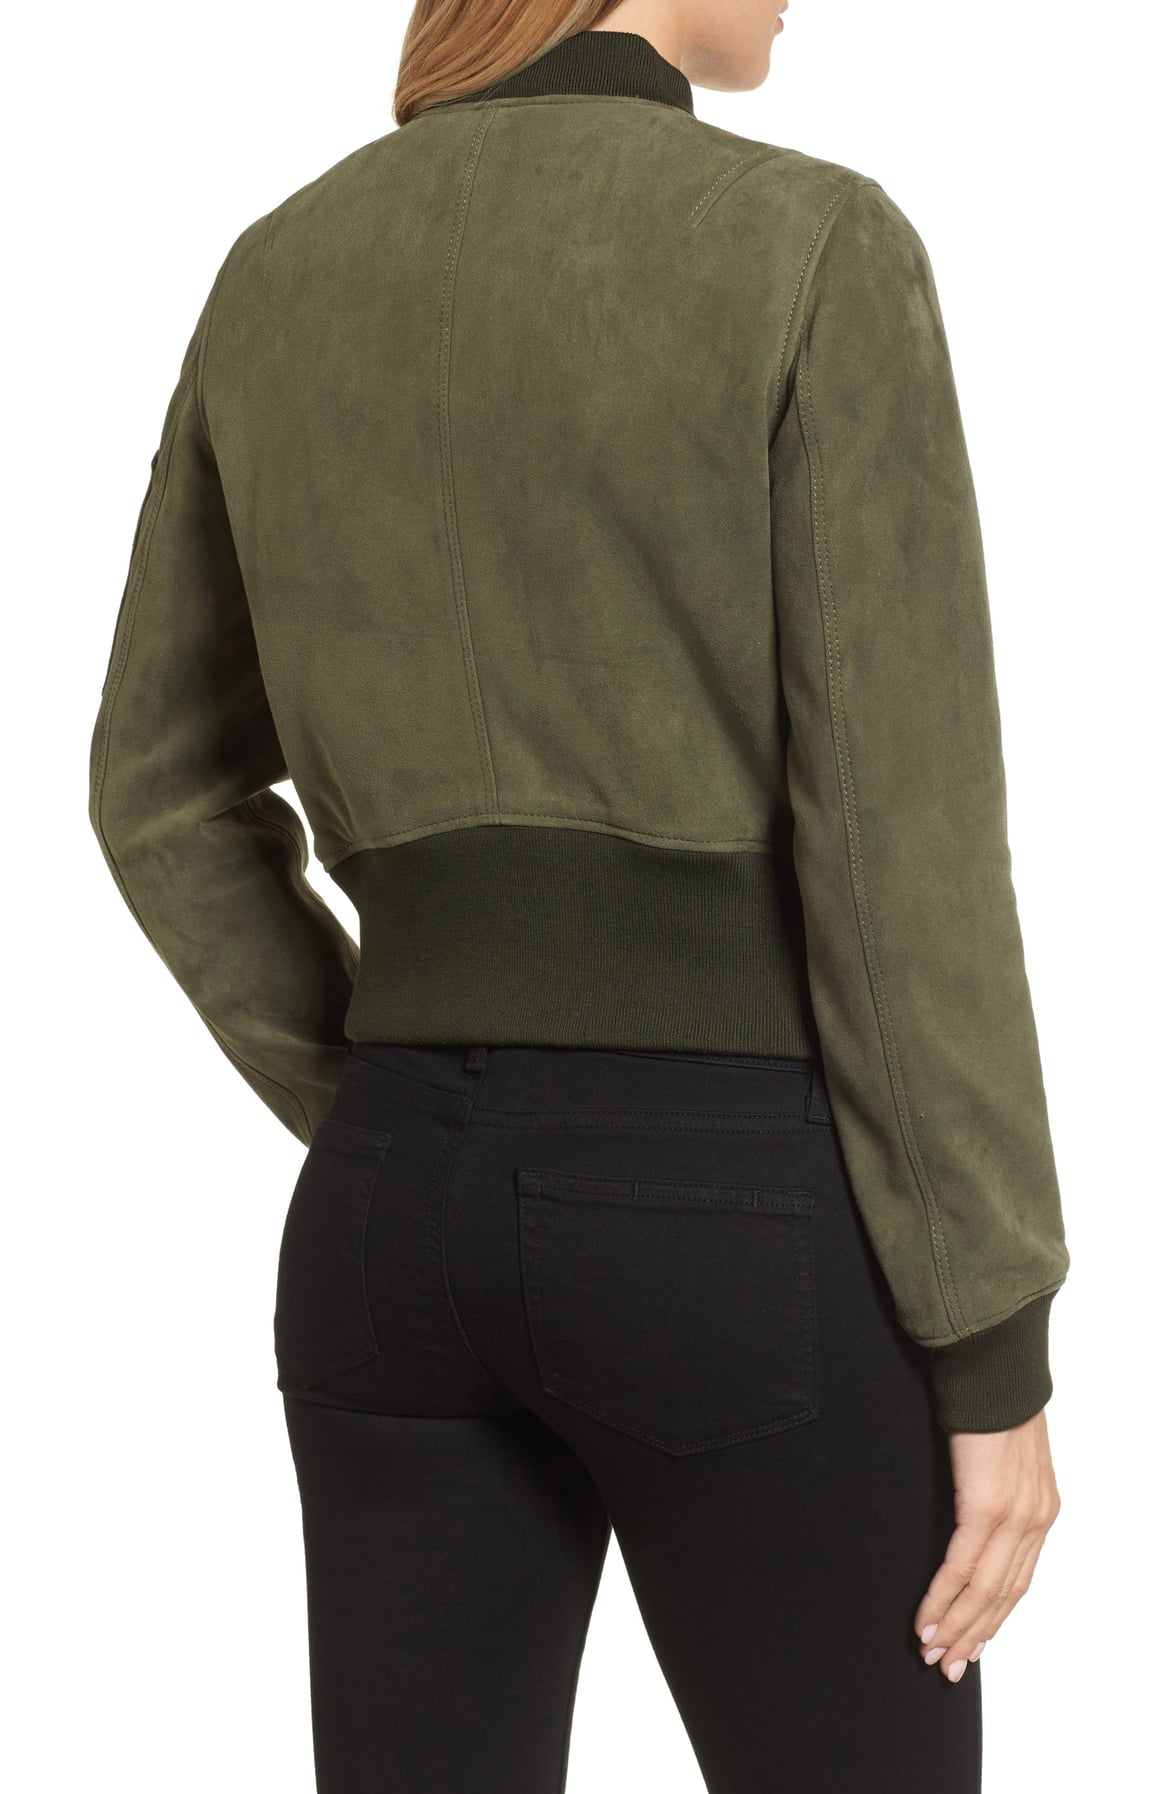 KENNETH COLE NEW YORK Women's Crop Suede Bomber Jacket Green Grove L